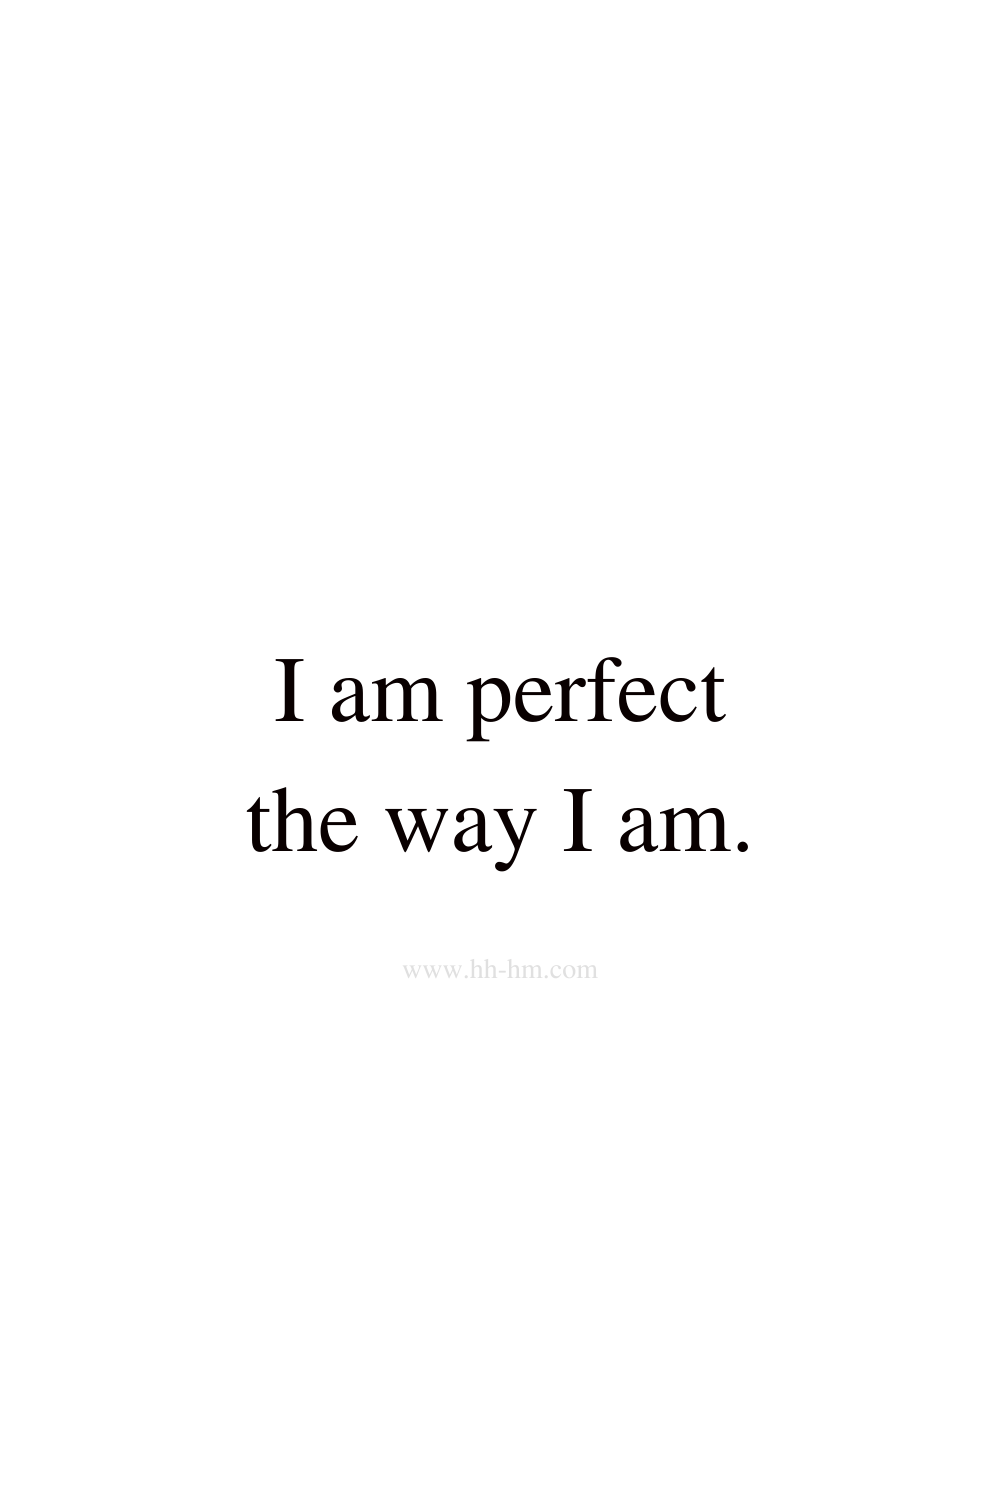 I am perfect the way I am - self love and self confidence morning affirmations